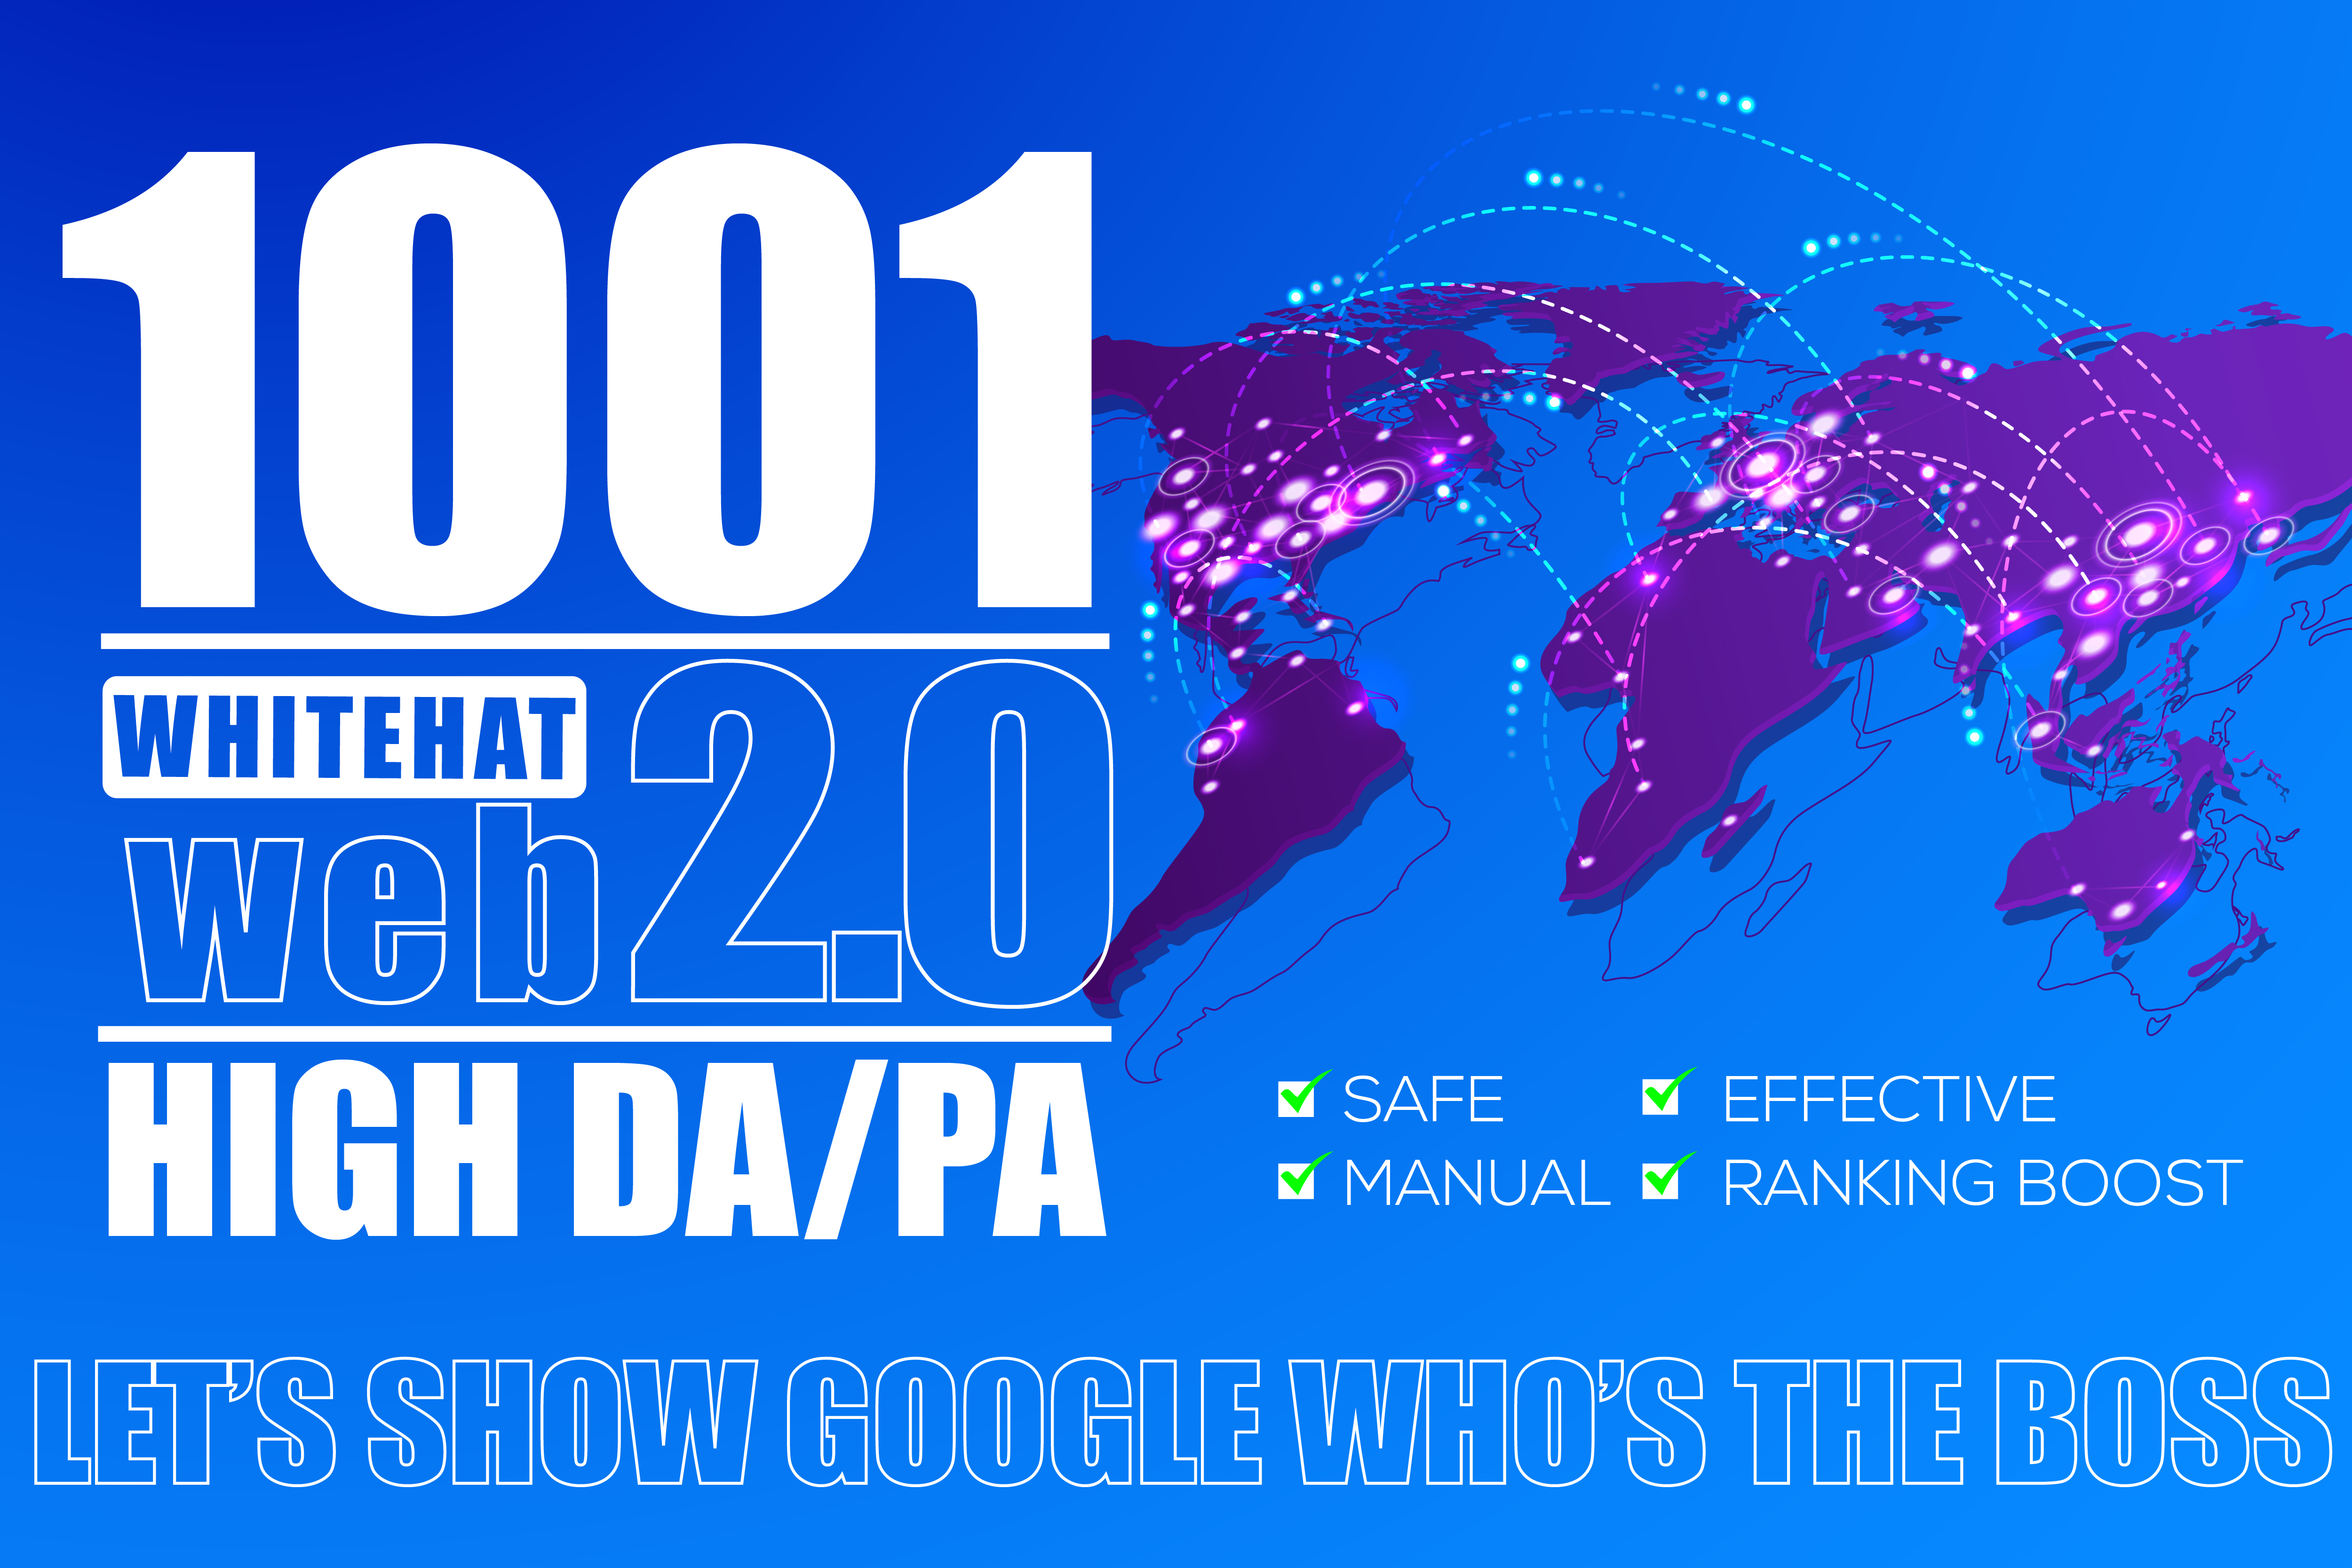 build 1001 authority web 2.0 backlinks from high DA PA